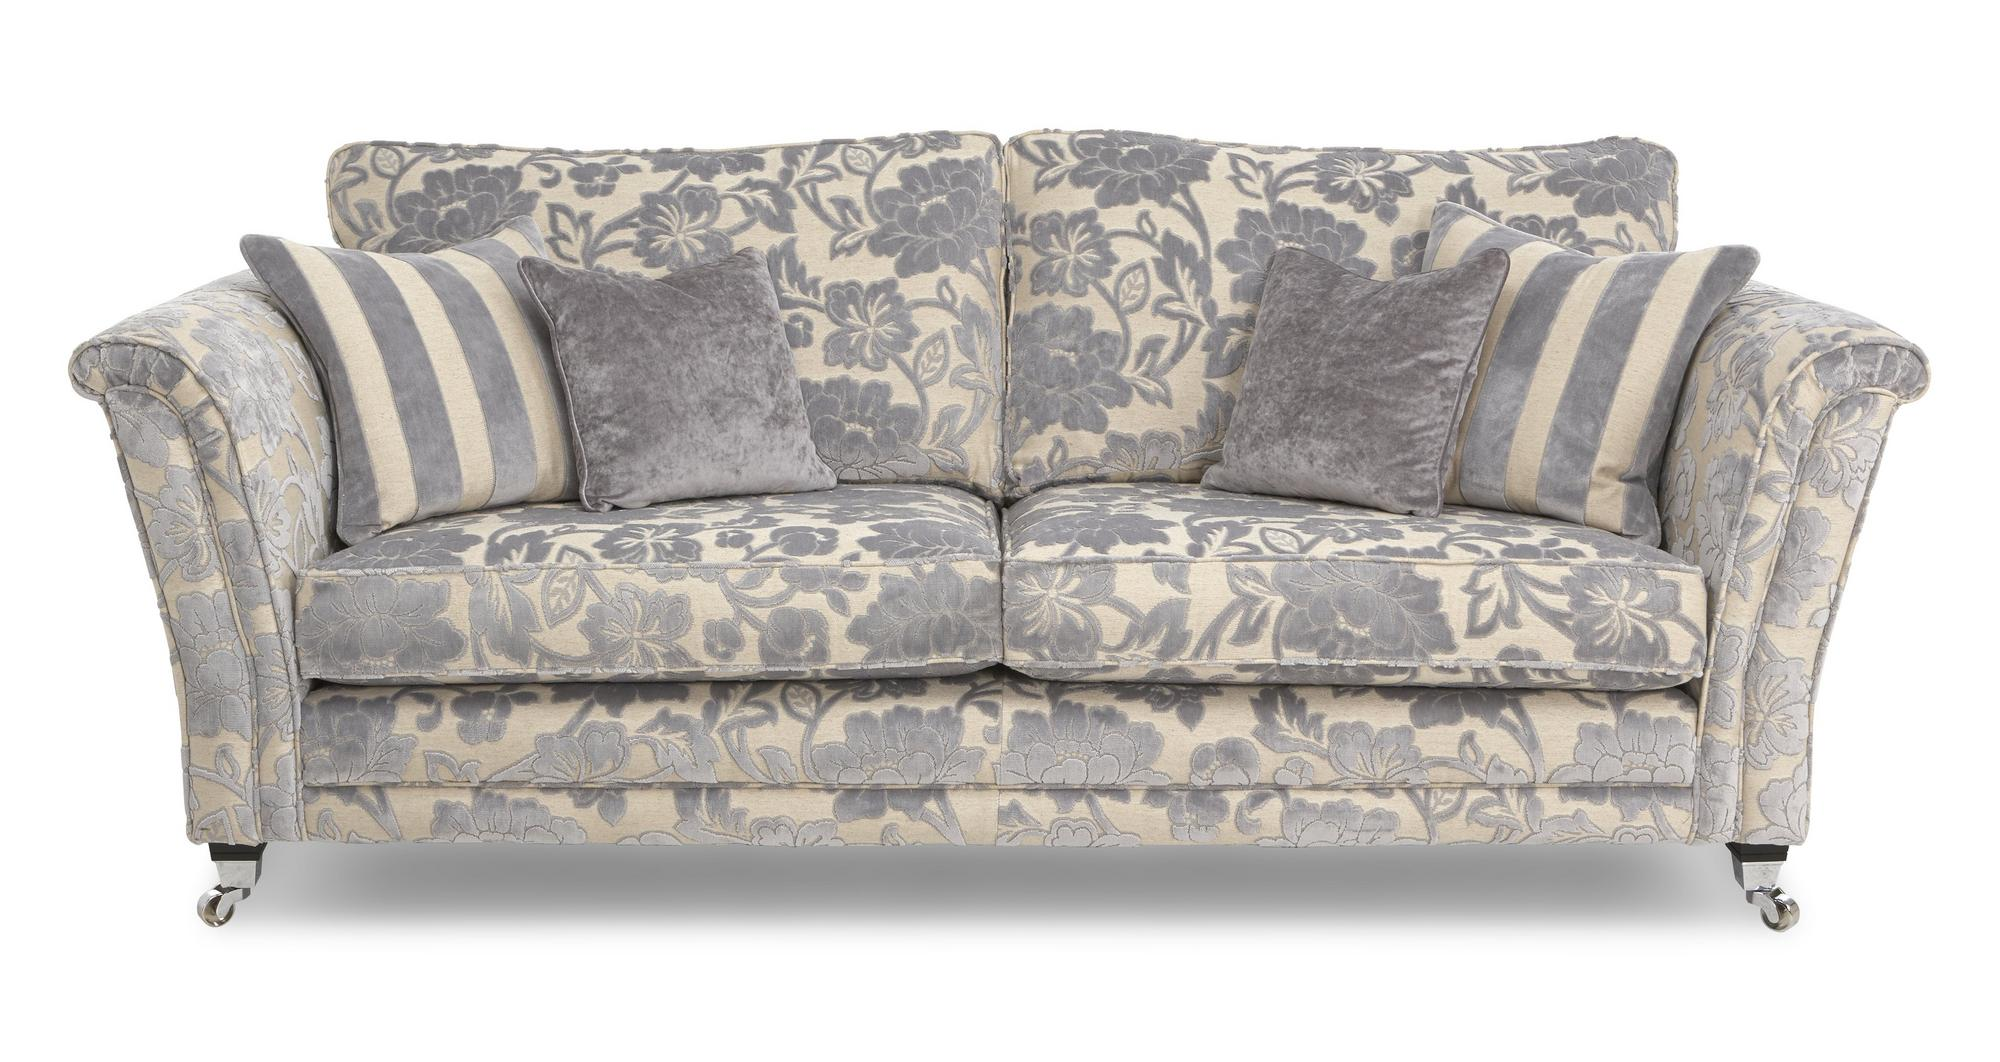 Dfs hogarth silver floral fabric 4 seater sofa ebay for Floral sofa bed